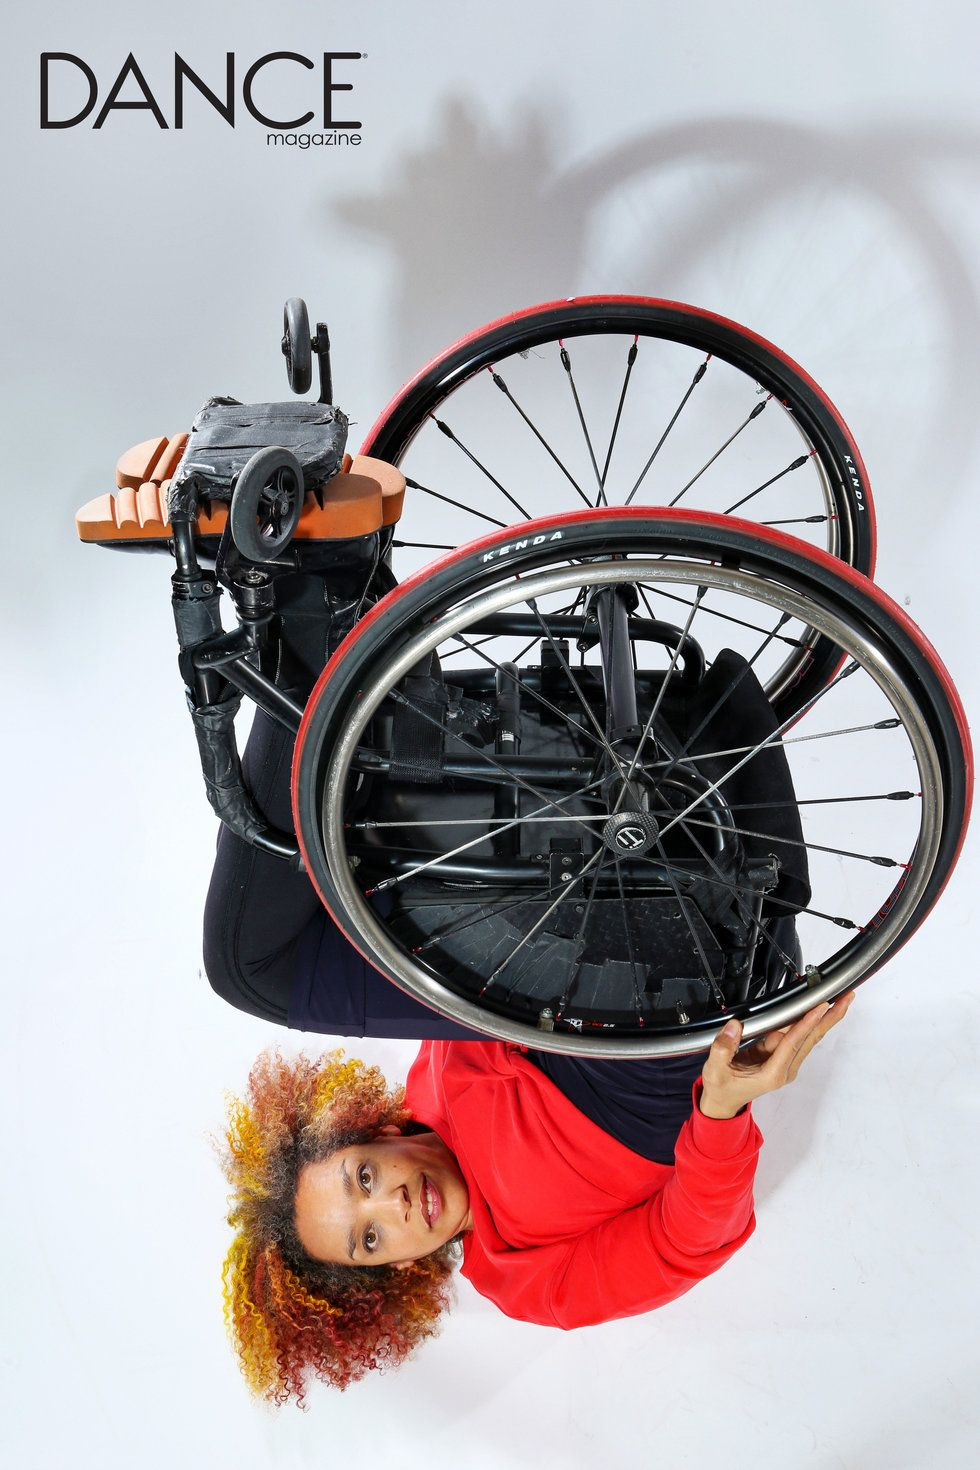 Alice Sheppard is upside down with wheels reaching to the sky. She looks directly at you. You can see the underside of her wheelchair, as though she is presenting it to you. Photo by Jayme Thornton.